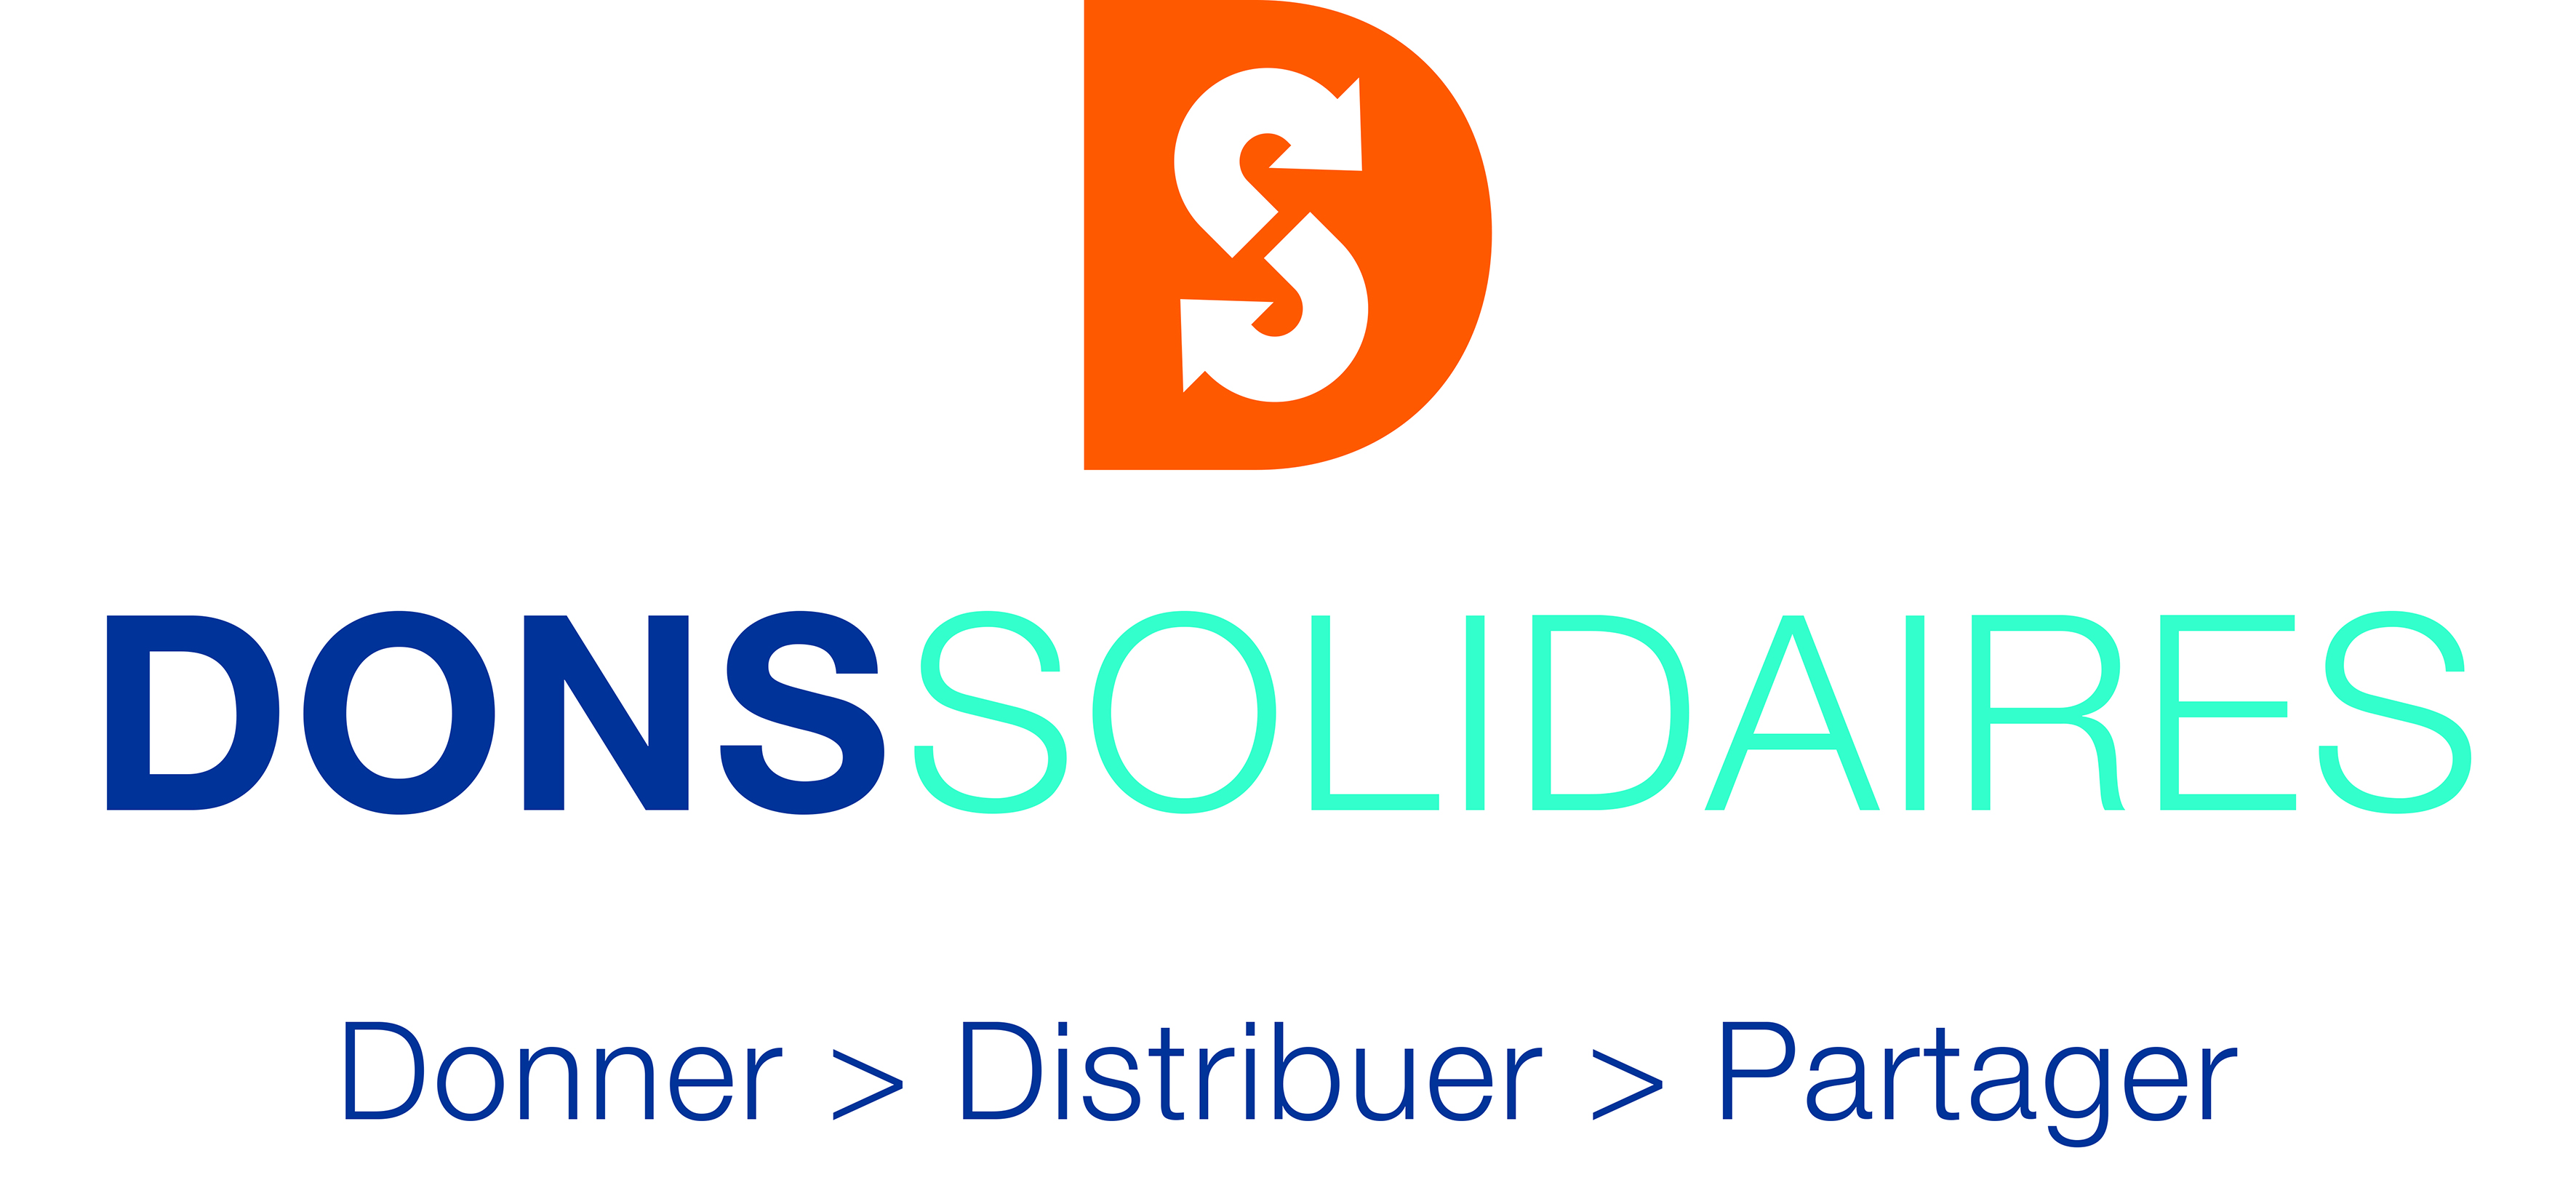 LOGO_DONS-SOLIDAIRES-HD